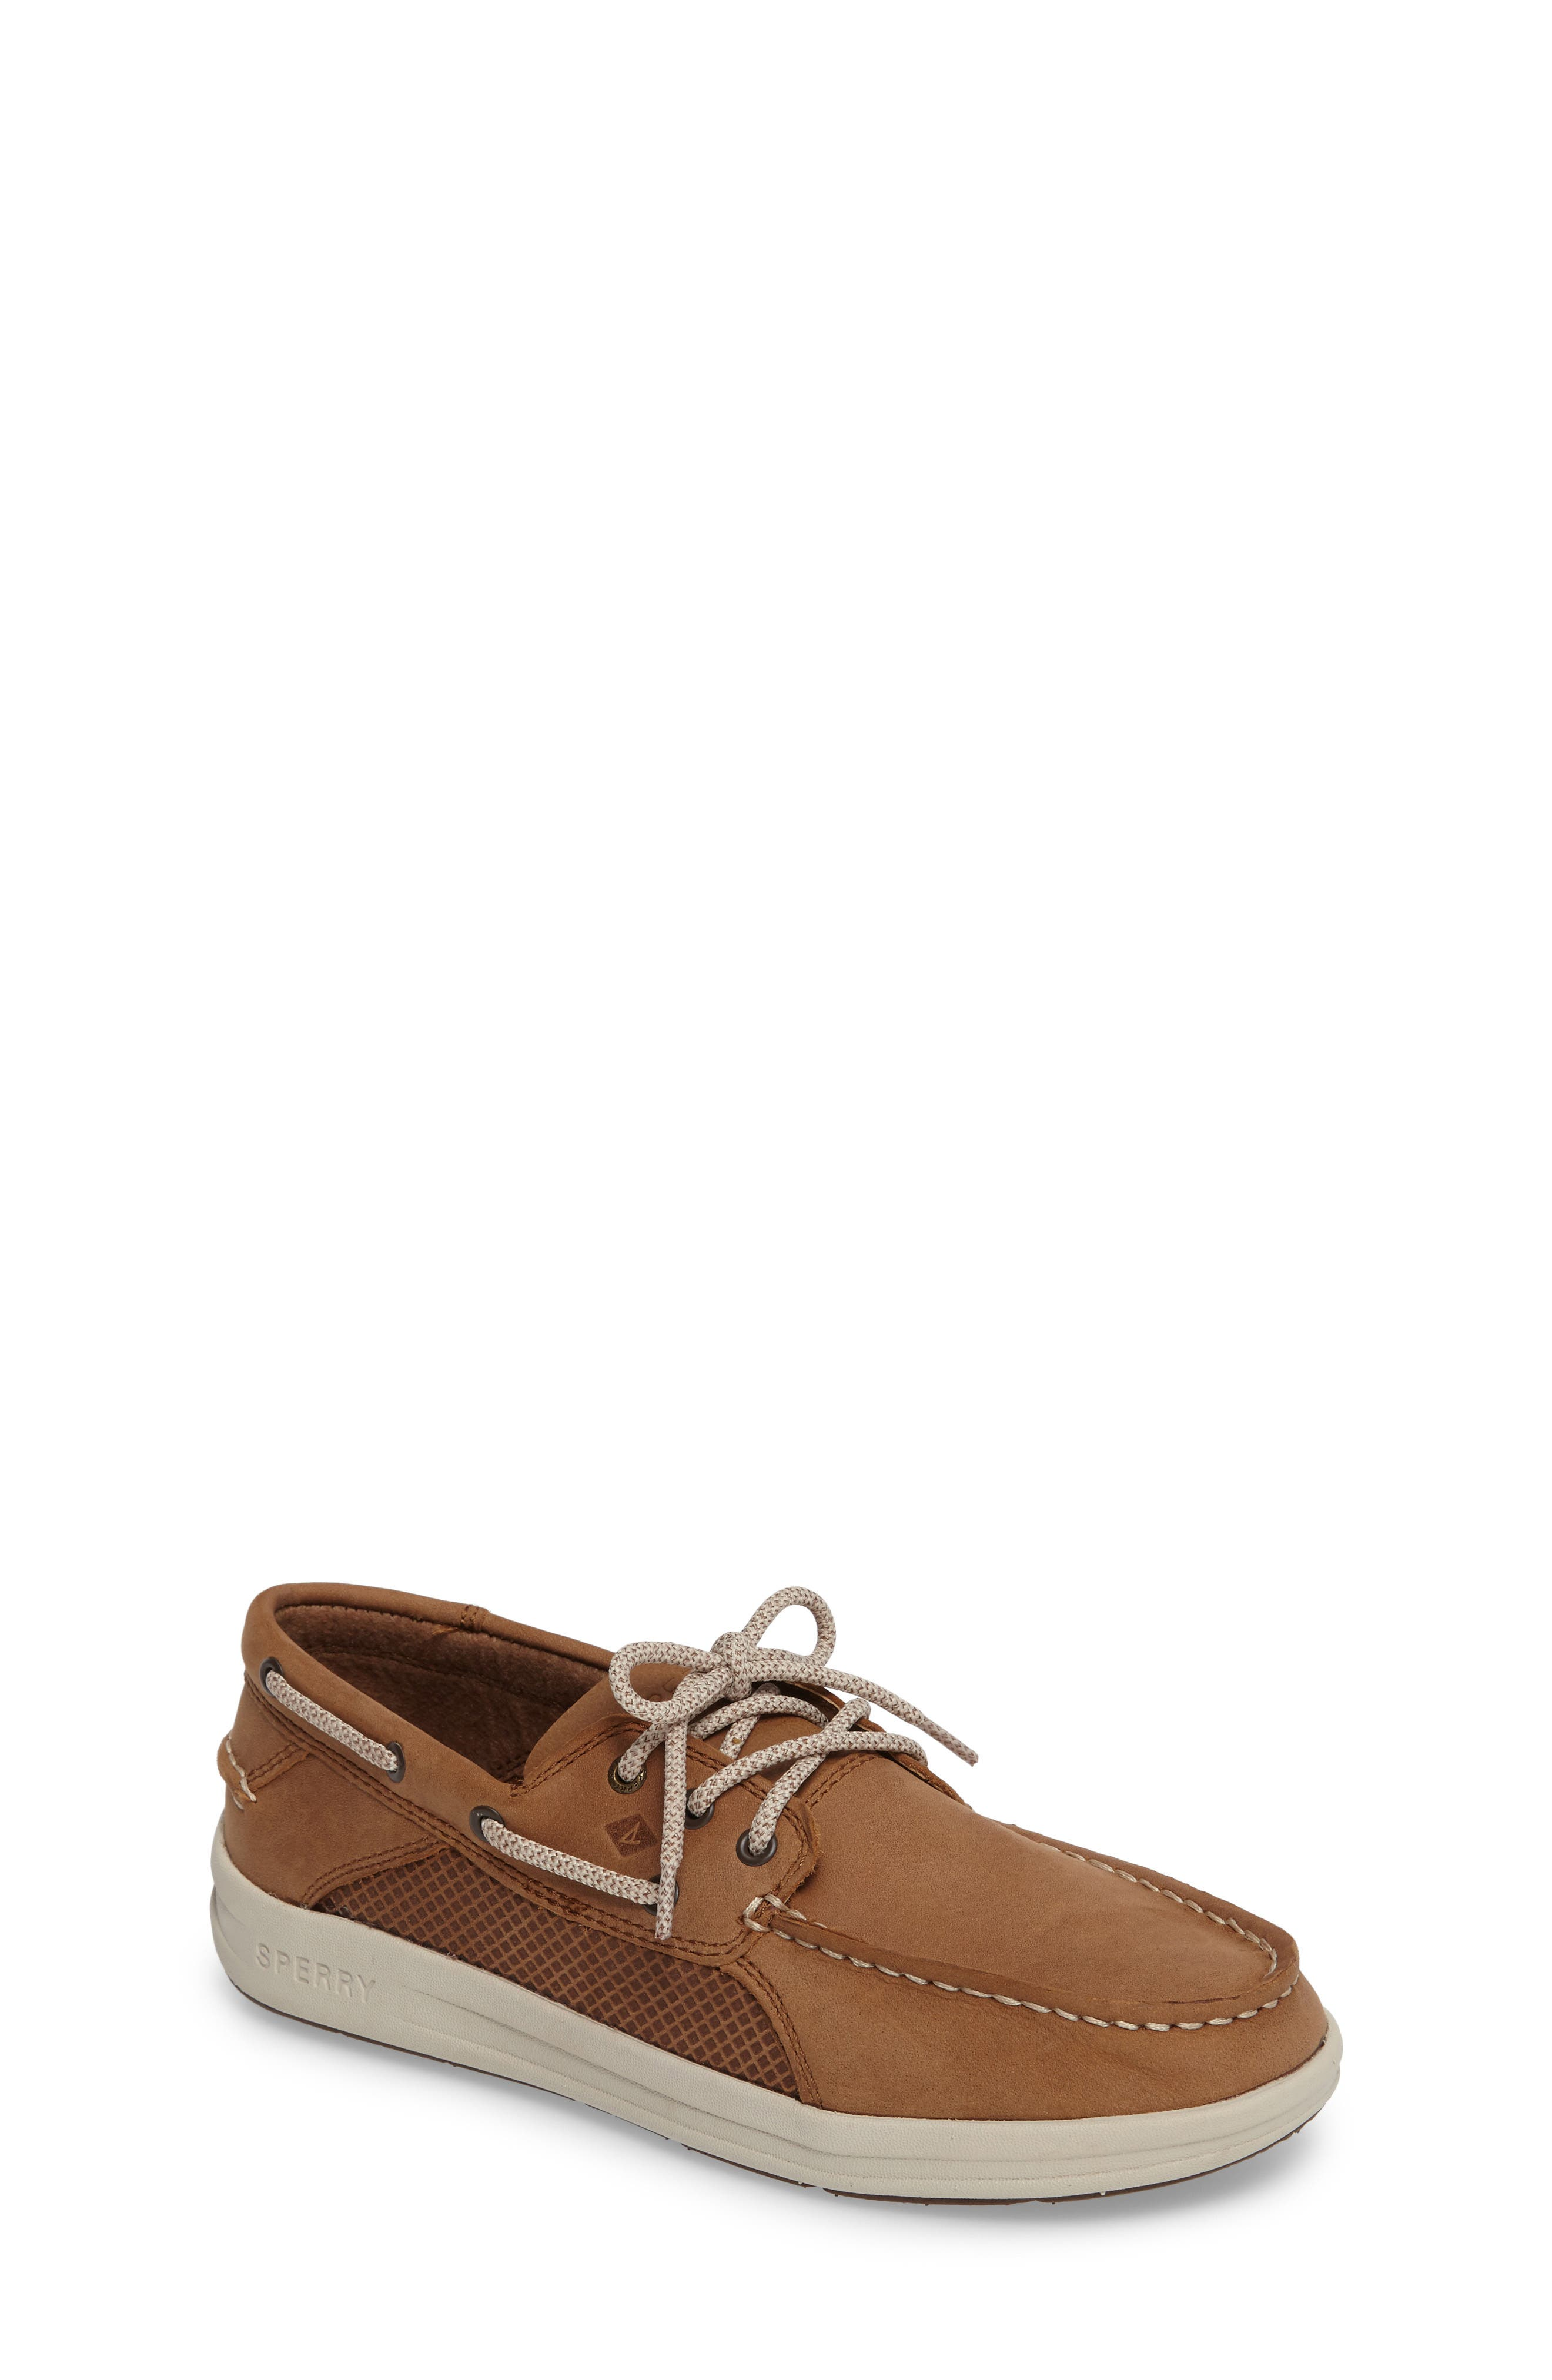 Sperry Gamefish Boat Shoe,                             Main thumbnail 1, color,                             Dark Tan